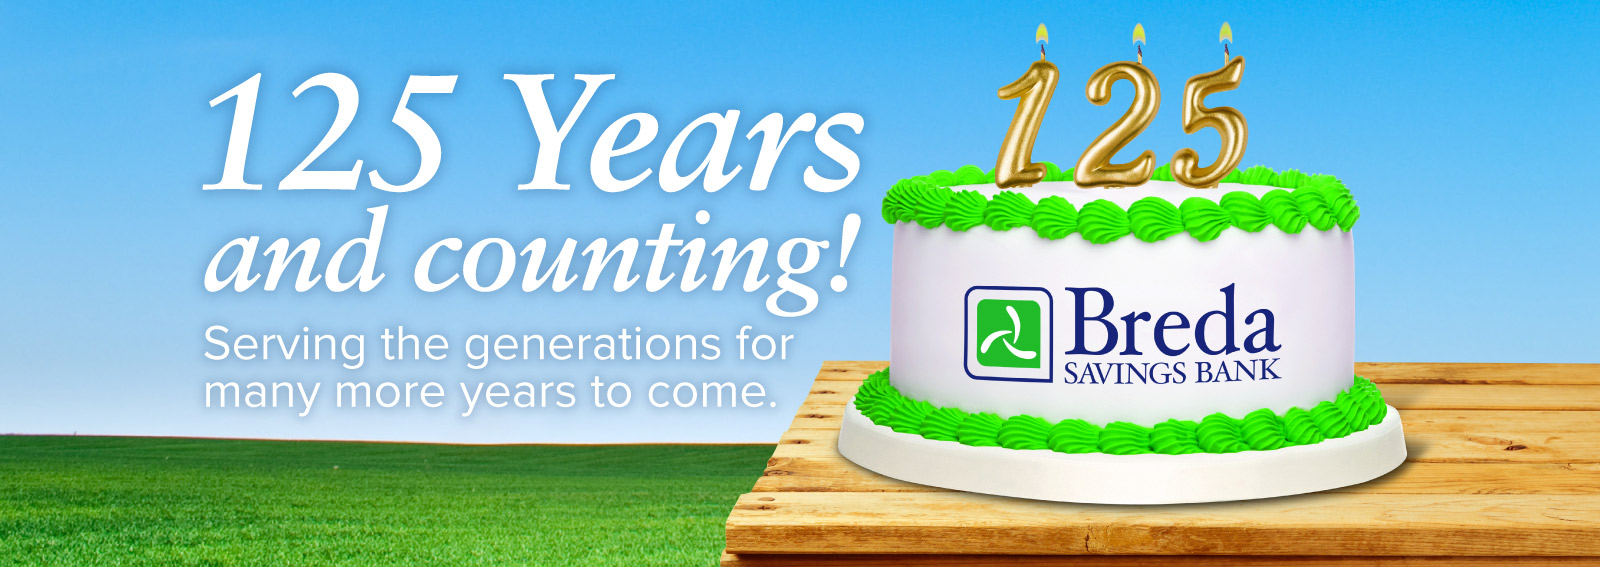 125 Years and Counting! Serving the generations for many more years to come.